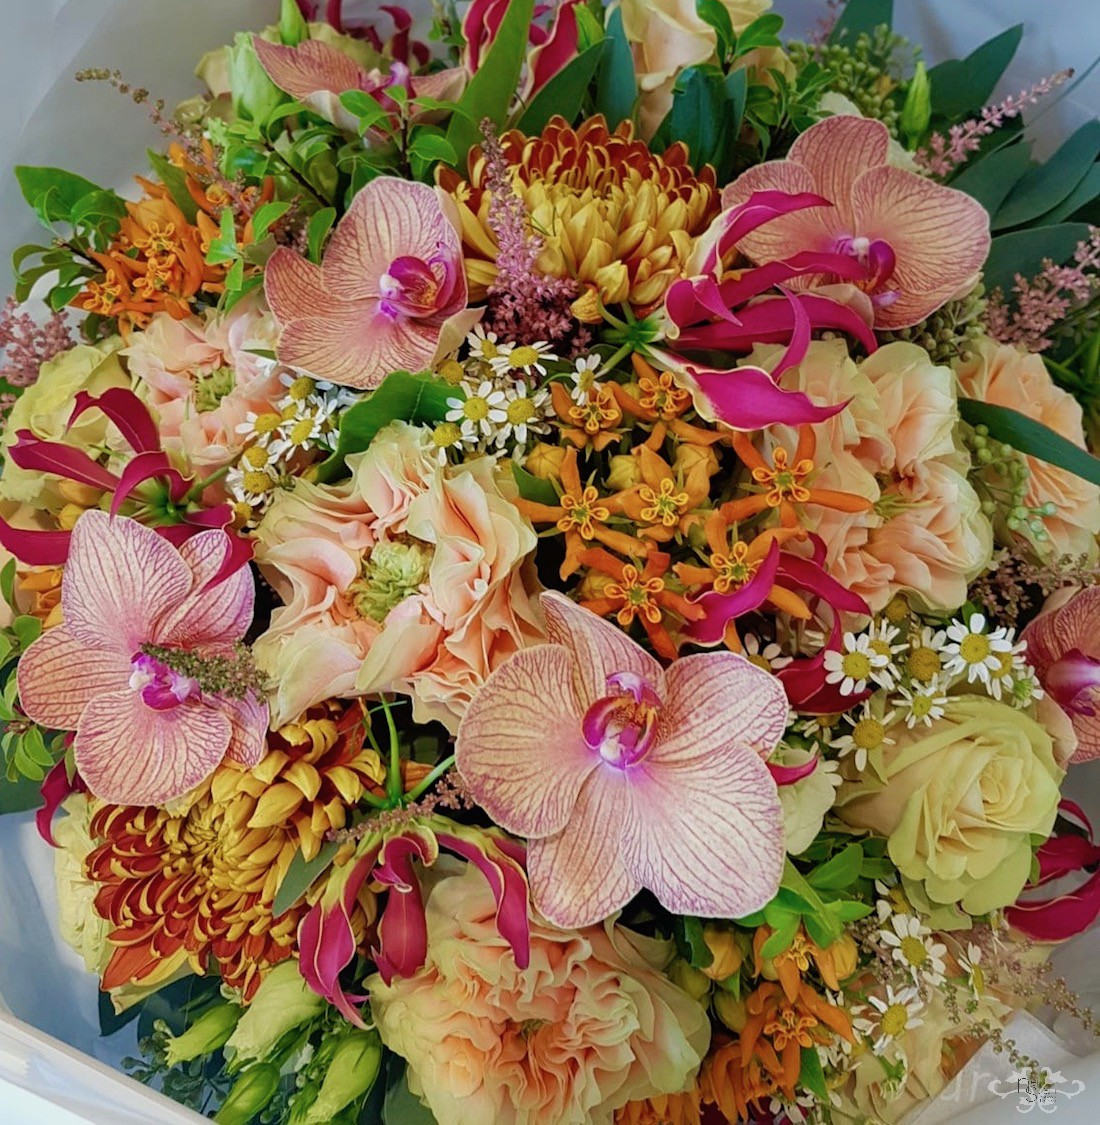 Neill Strain Floral Couture Autumn bouquet.jpg